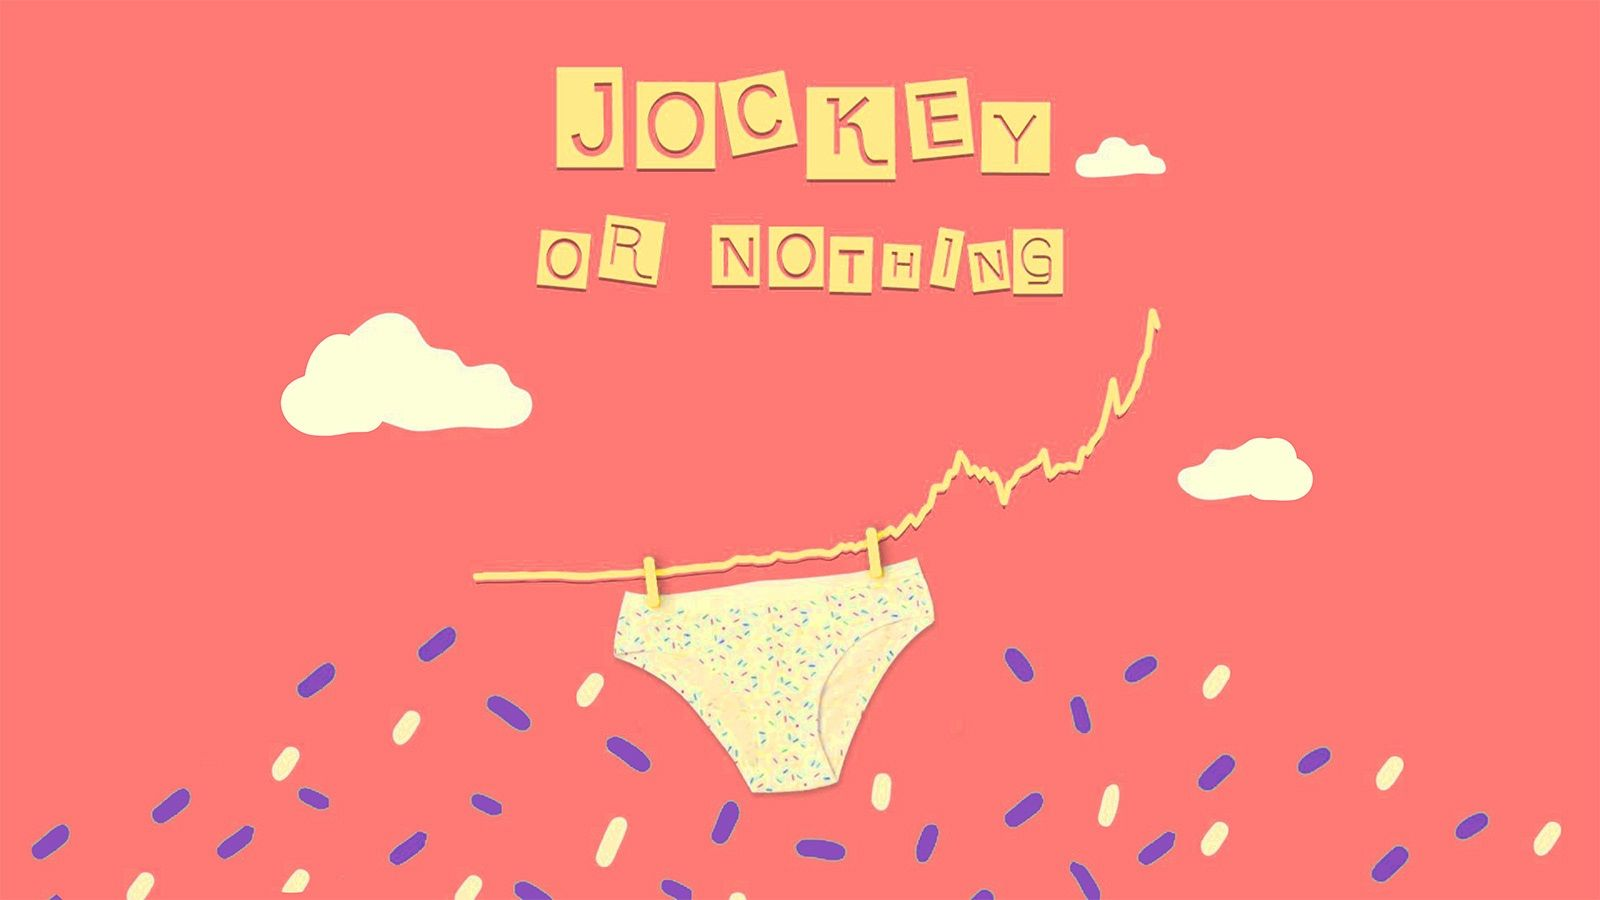 Jockey - All or Nothing